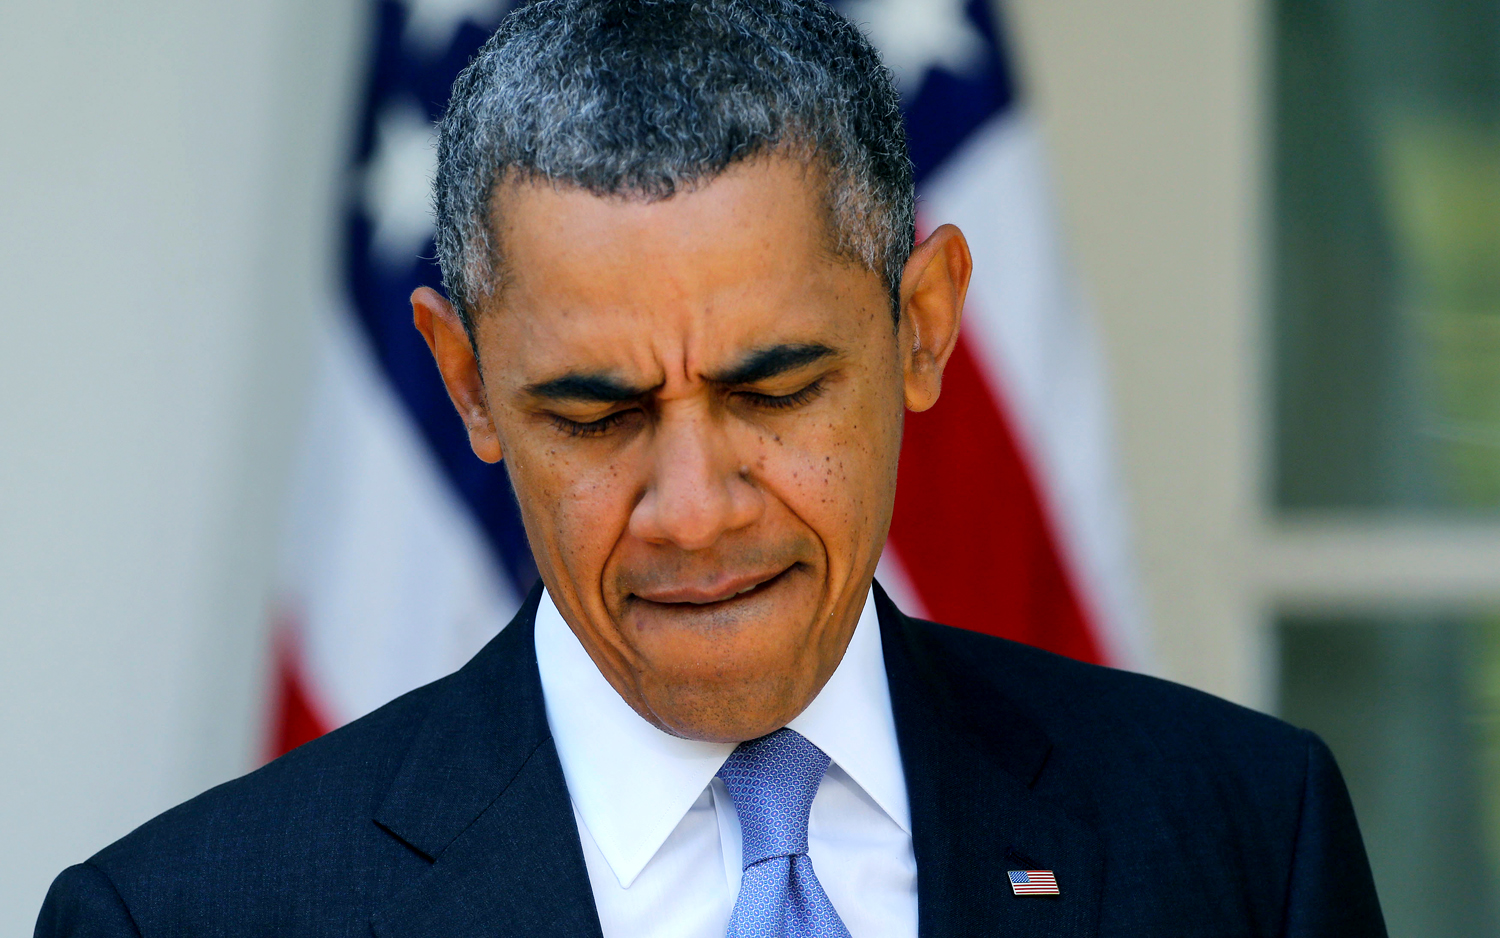 Obama threatened by CyberCaliphate.